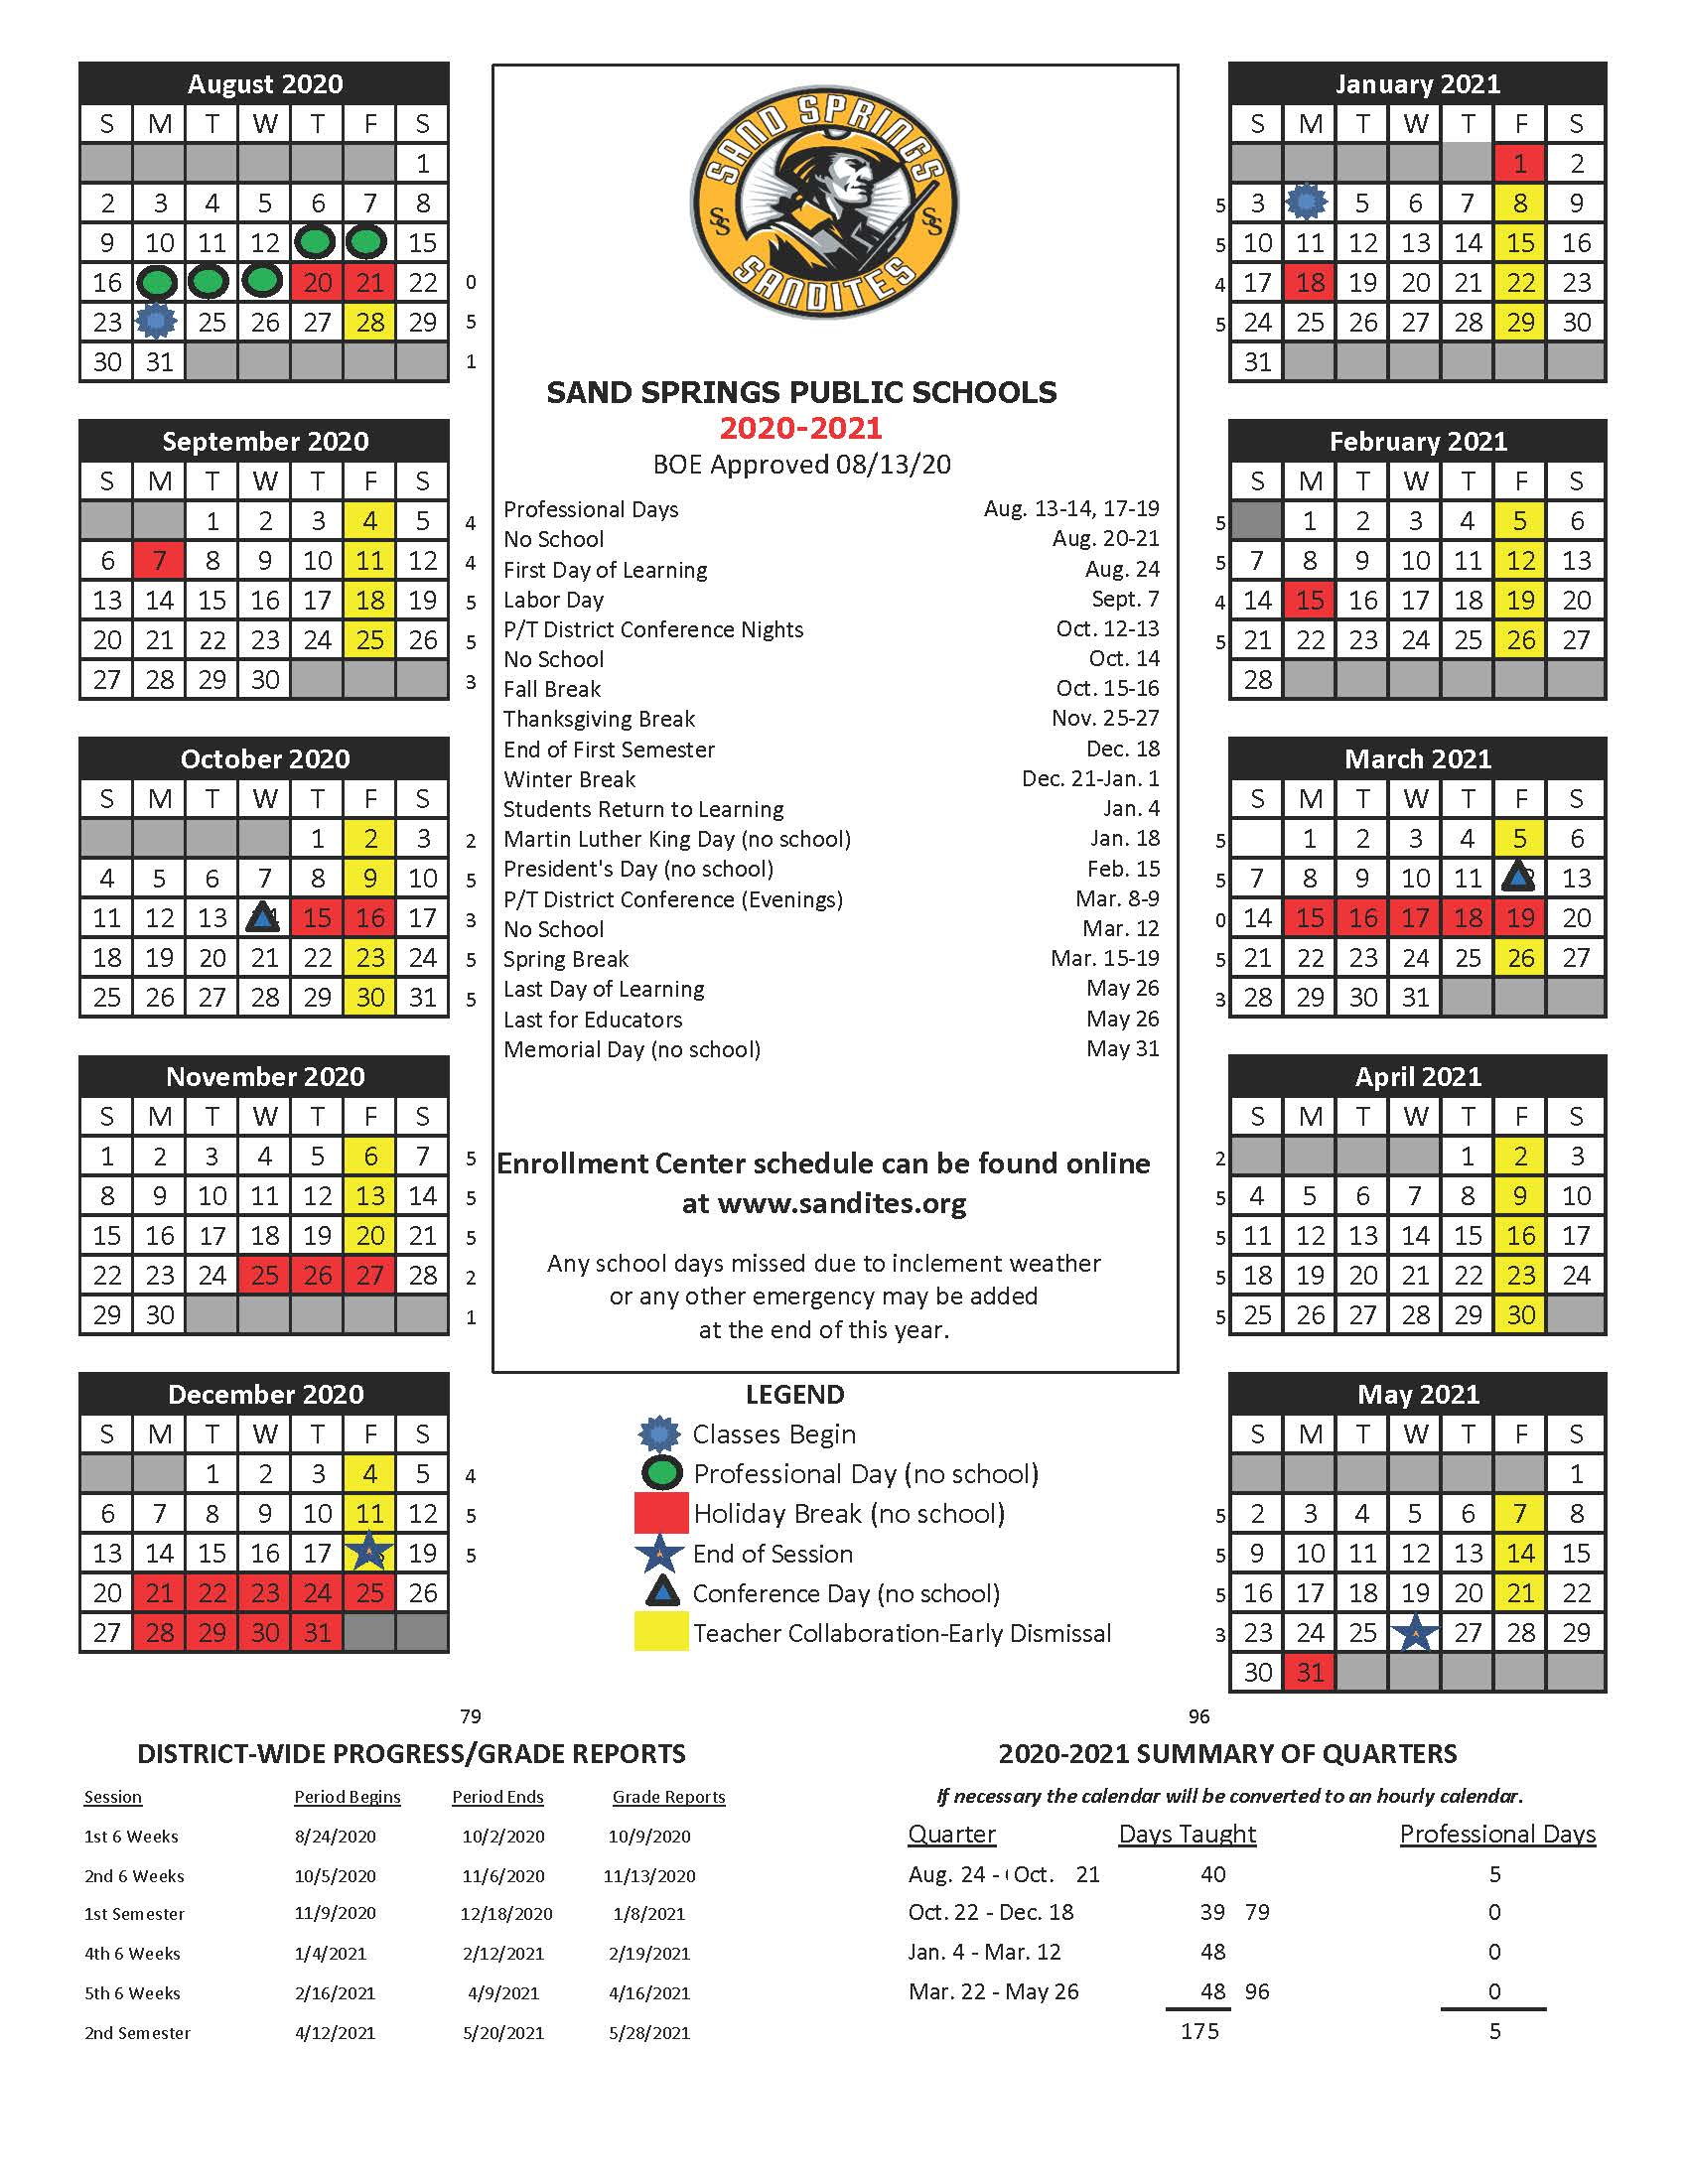 Approved calendar for the 2020-2021 SY